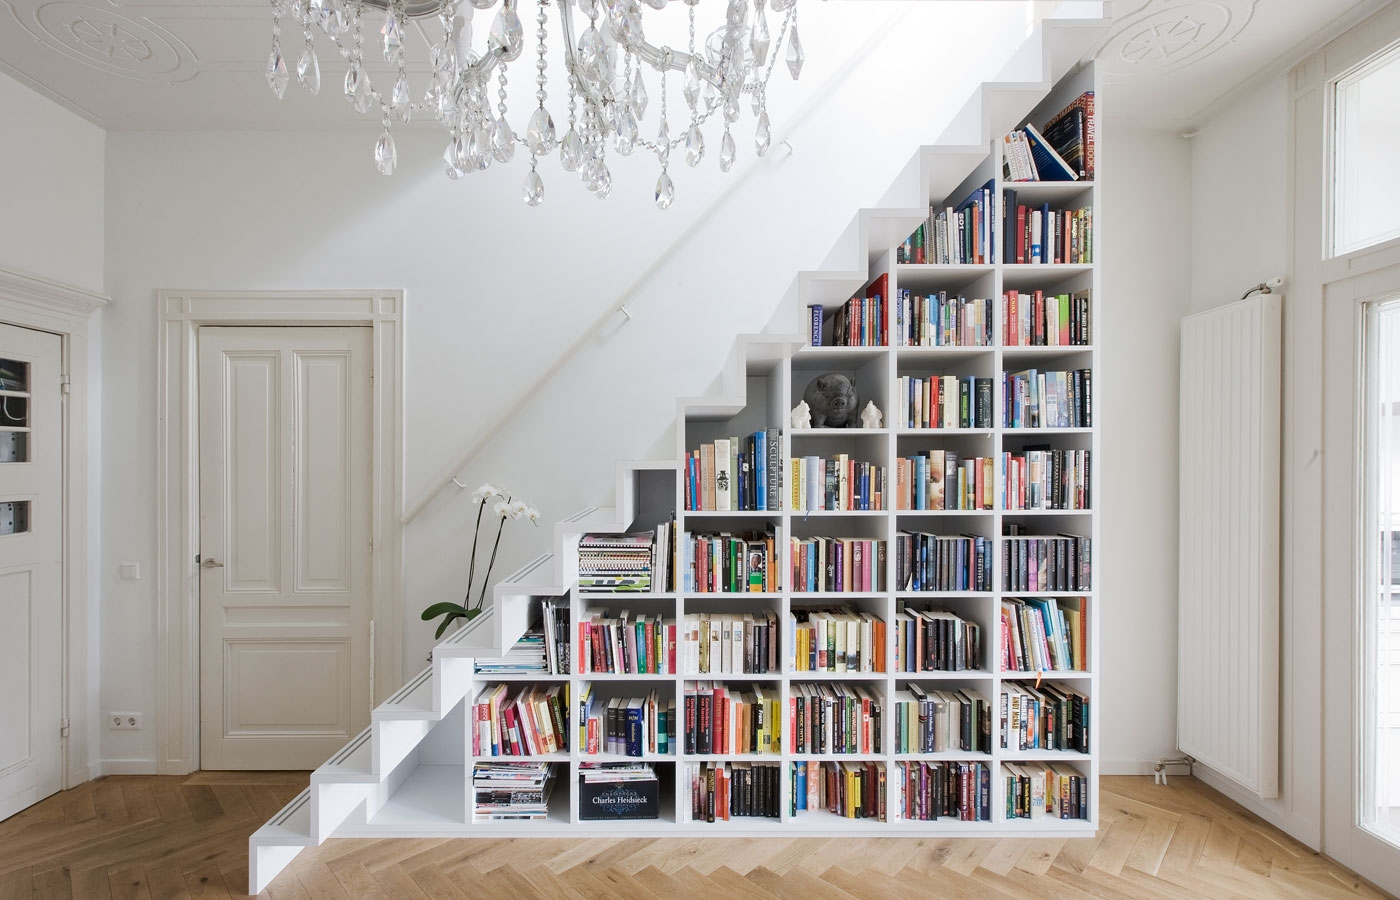 9 Creative Book Storage Hacks For Small Apartments | Creative Stairs For Small Spaces | Build In Storage | Compact | Interior | Round Shape | Wooden